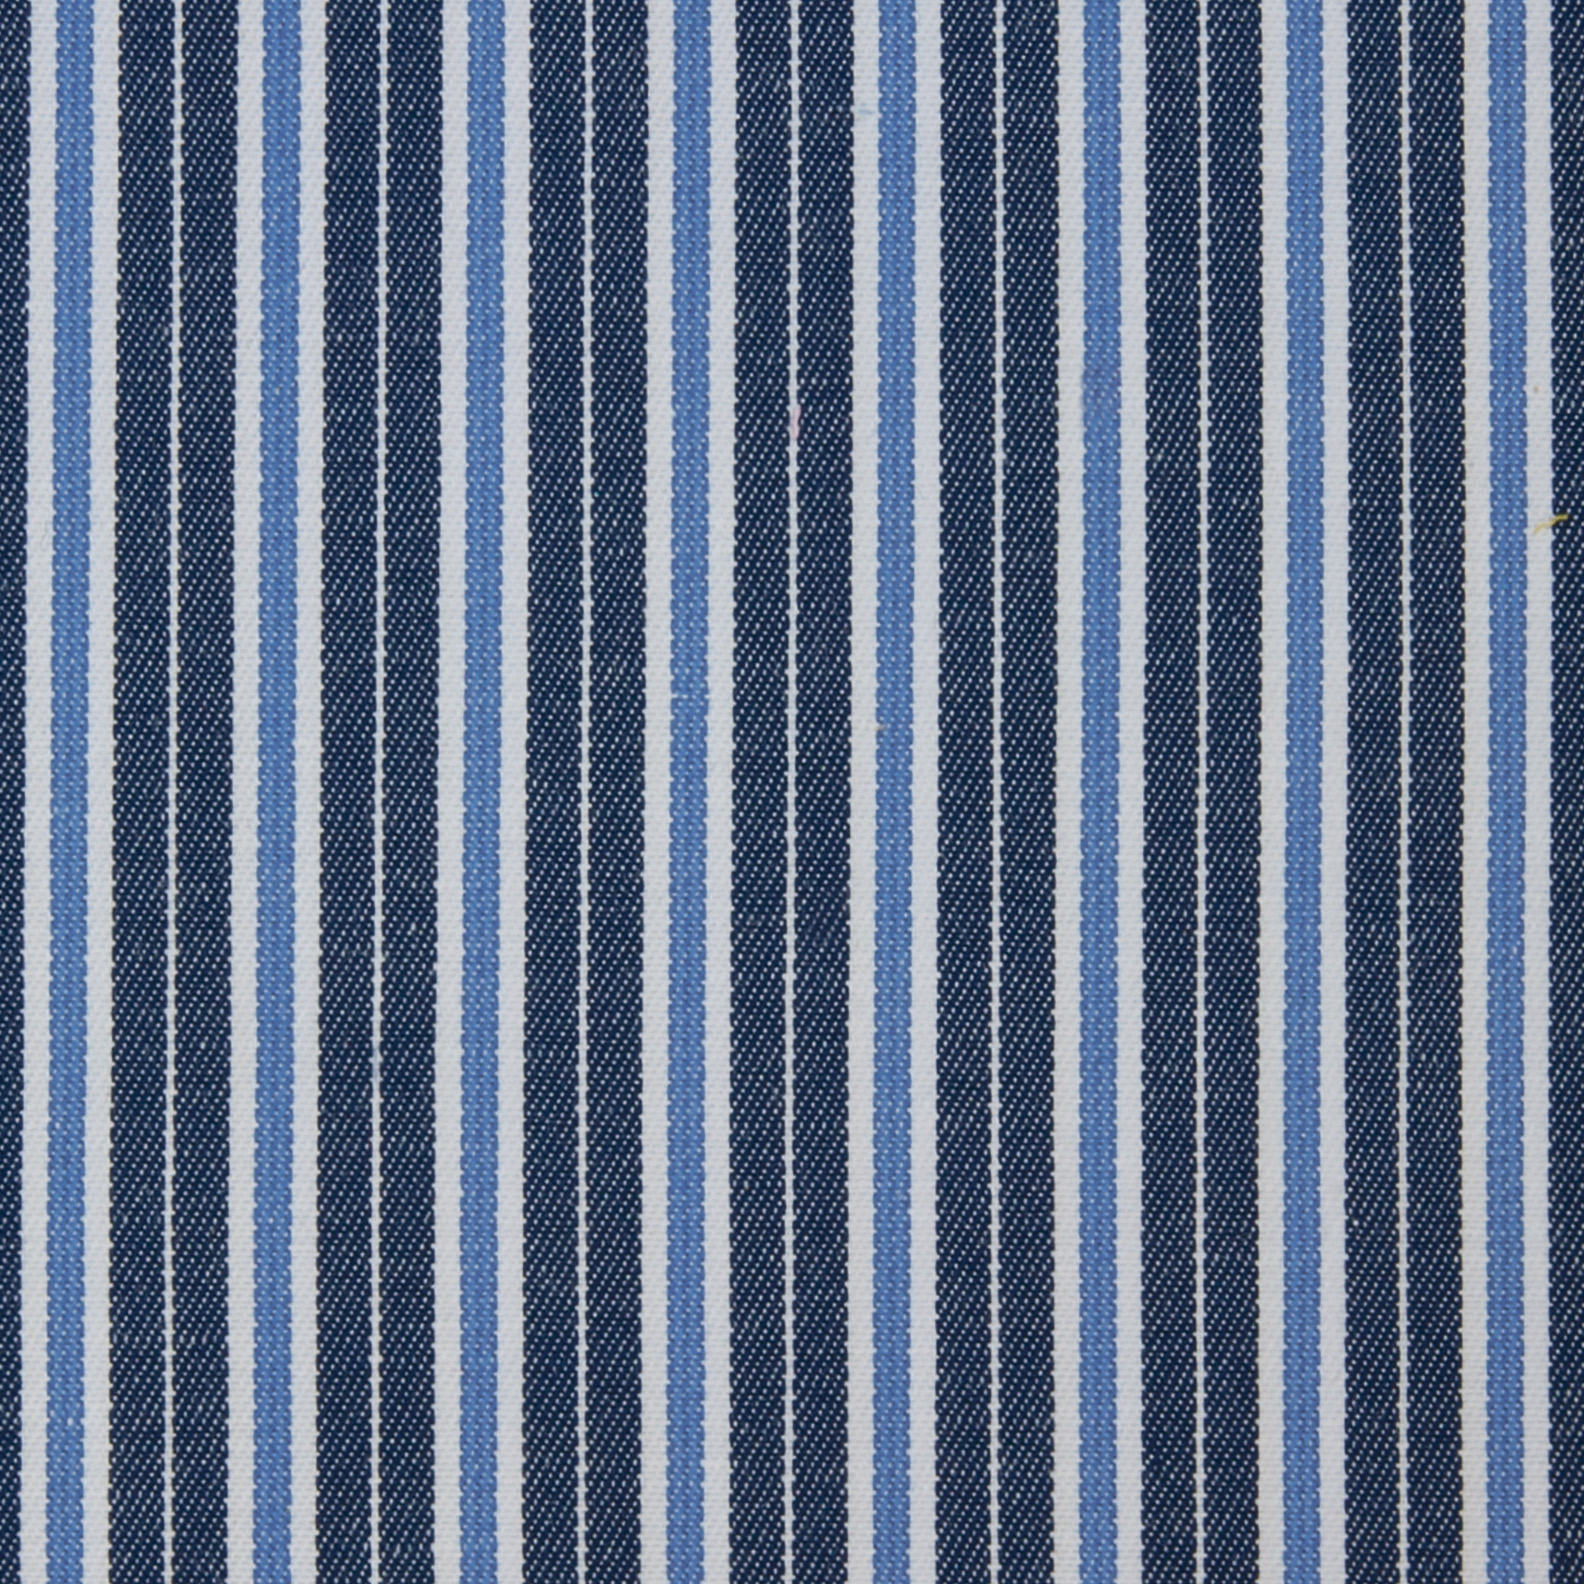 Buy tailor made shirts online - Arturo Collection - Navy, White and Blue Stripes